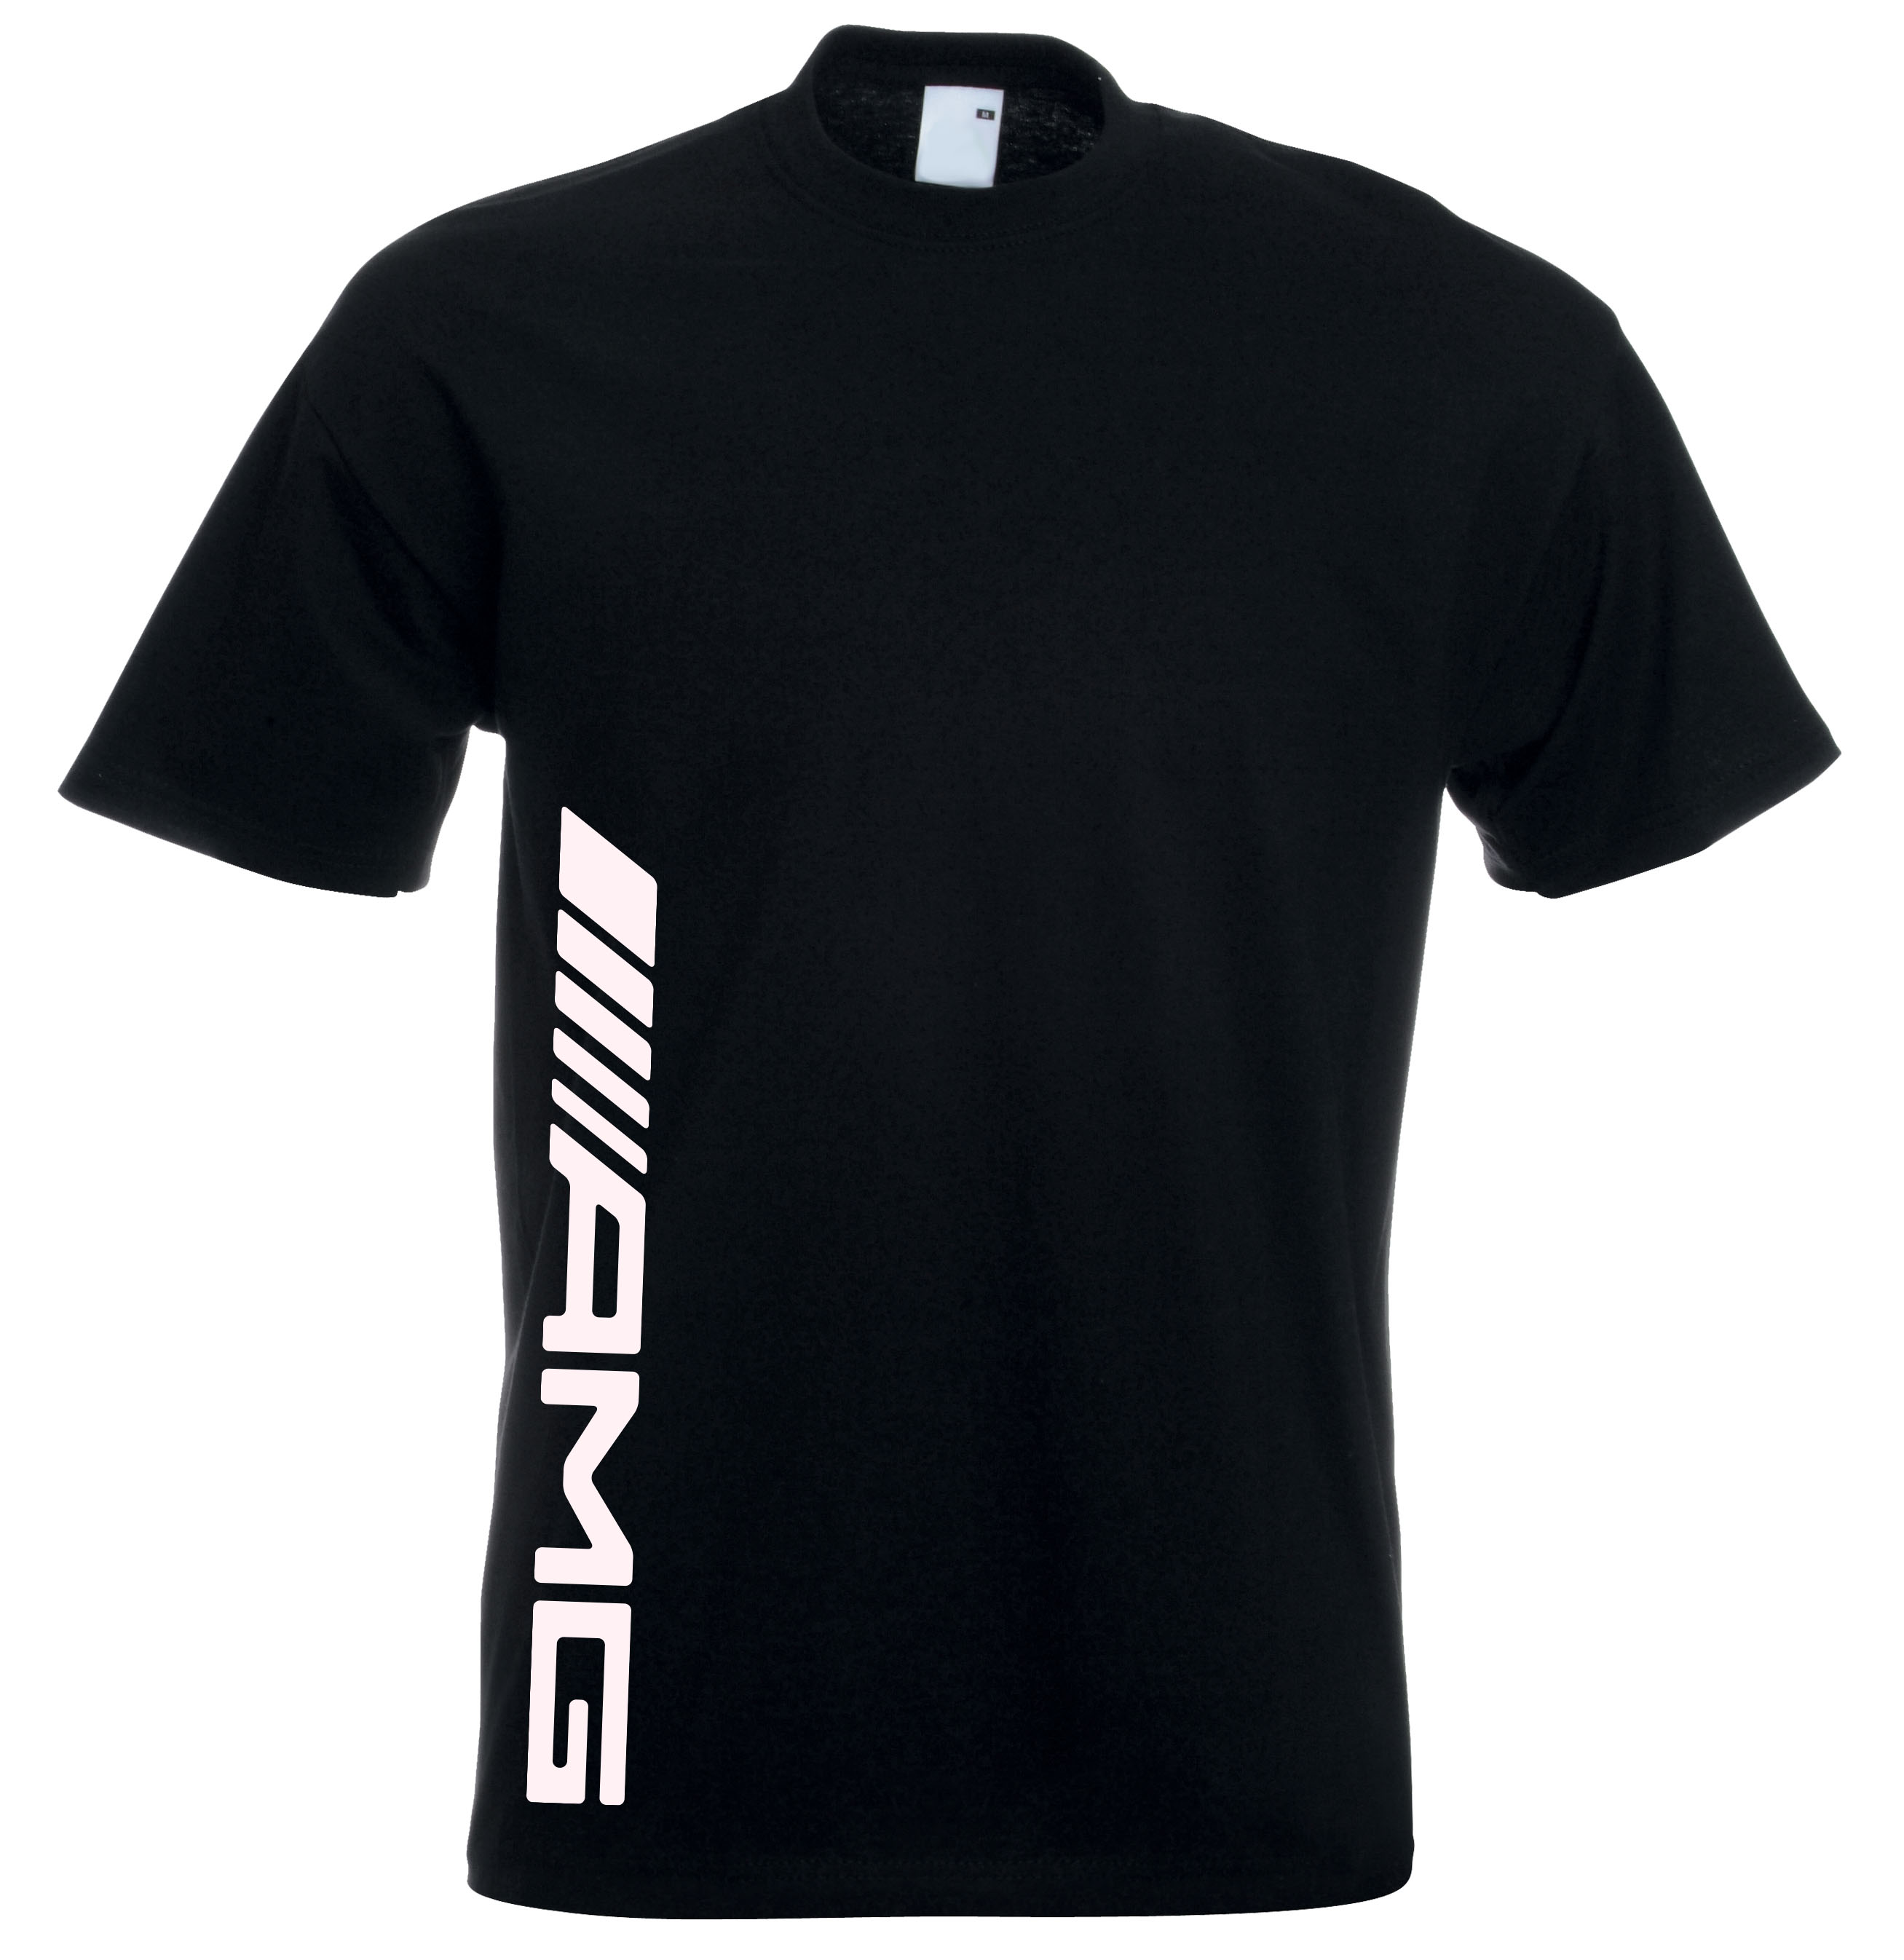 silver gifts motor benz ideas original shirts patent mercedes en gift store classic car sterling